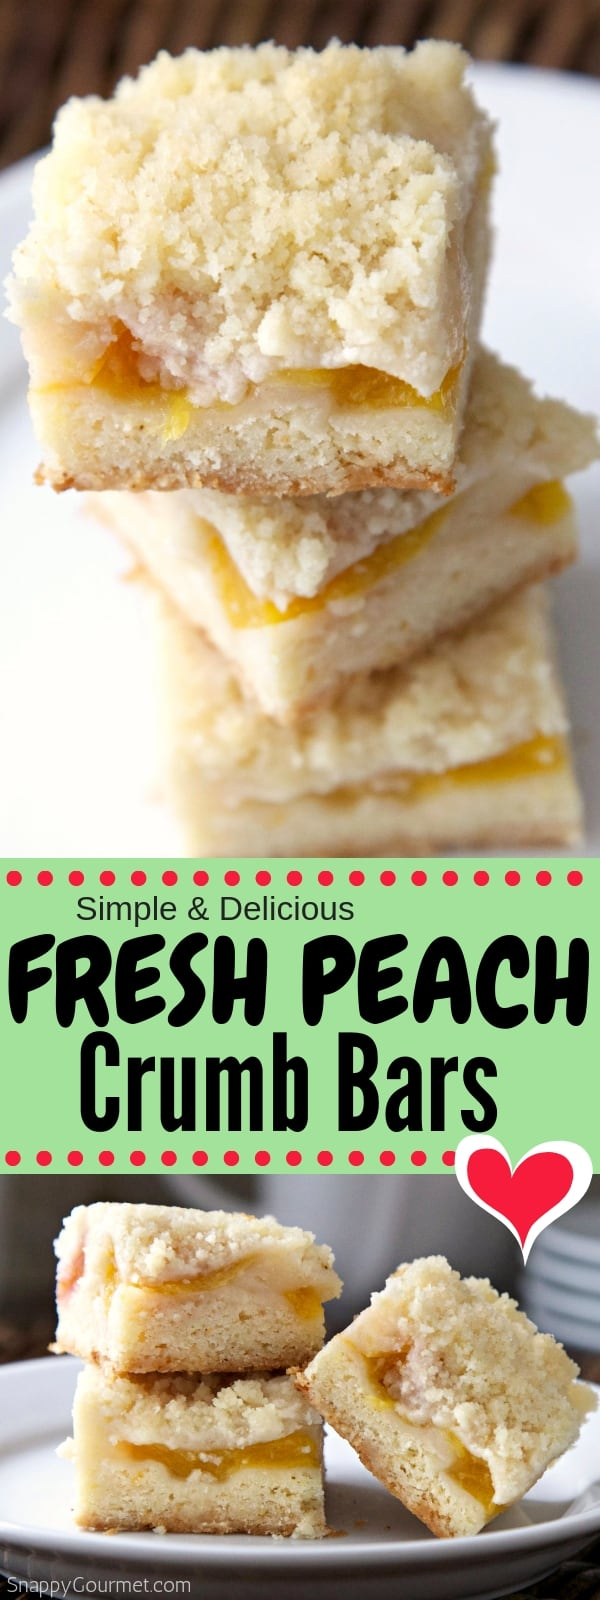 Peach Crumb Bars photo collage